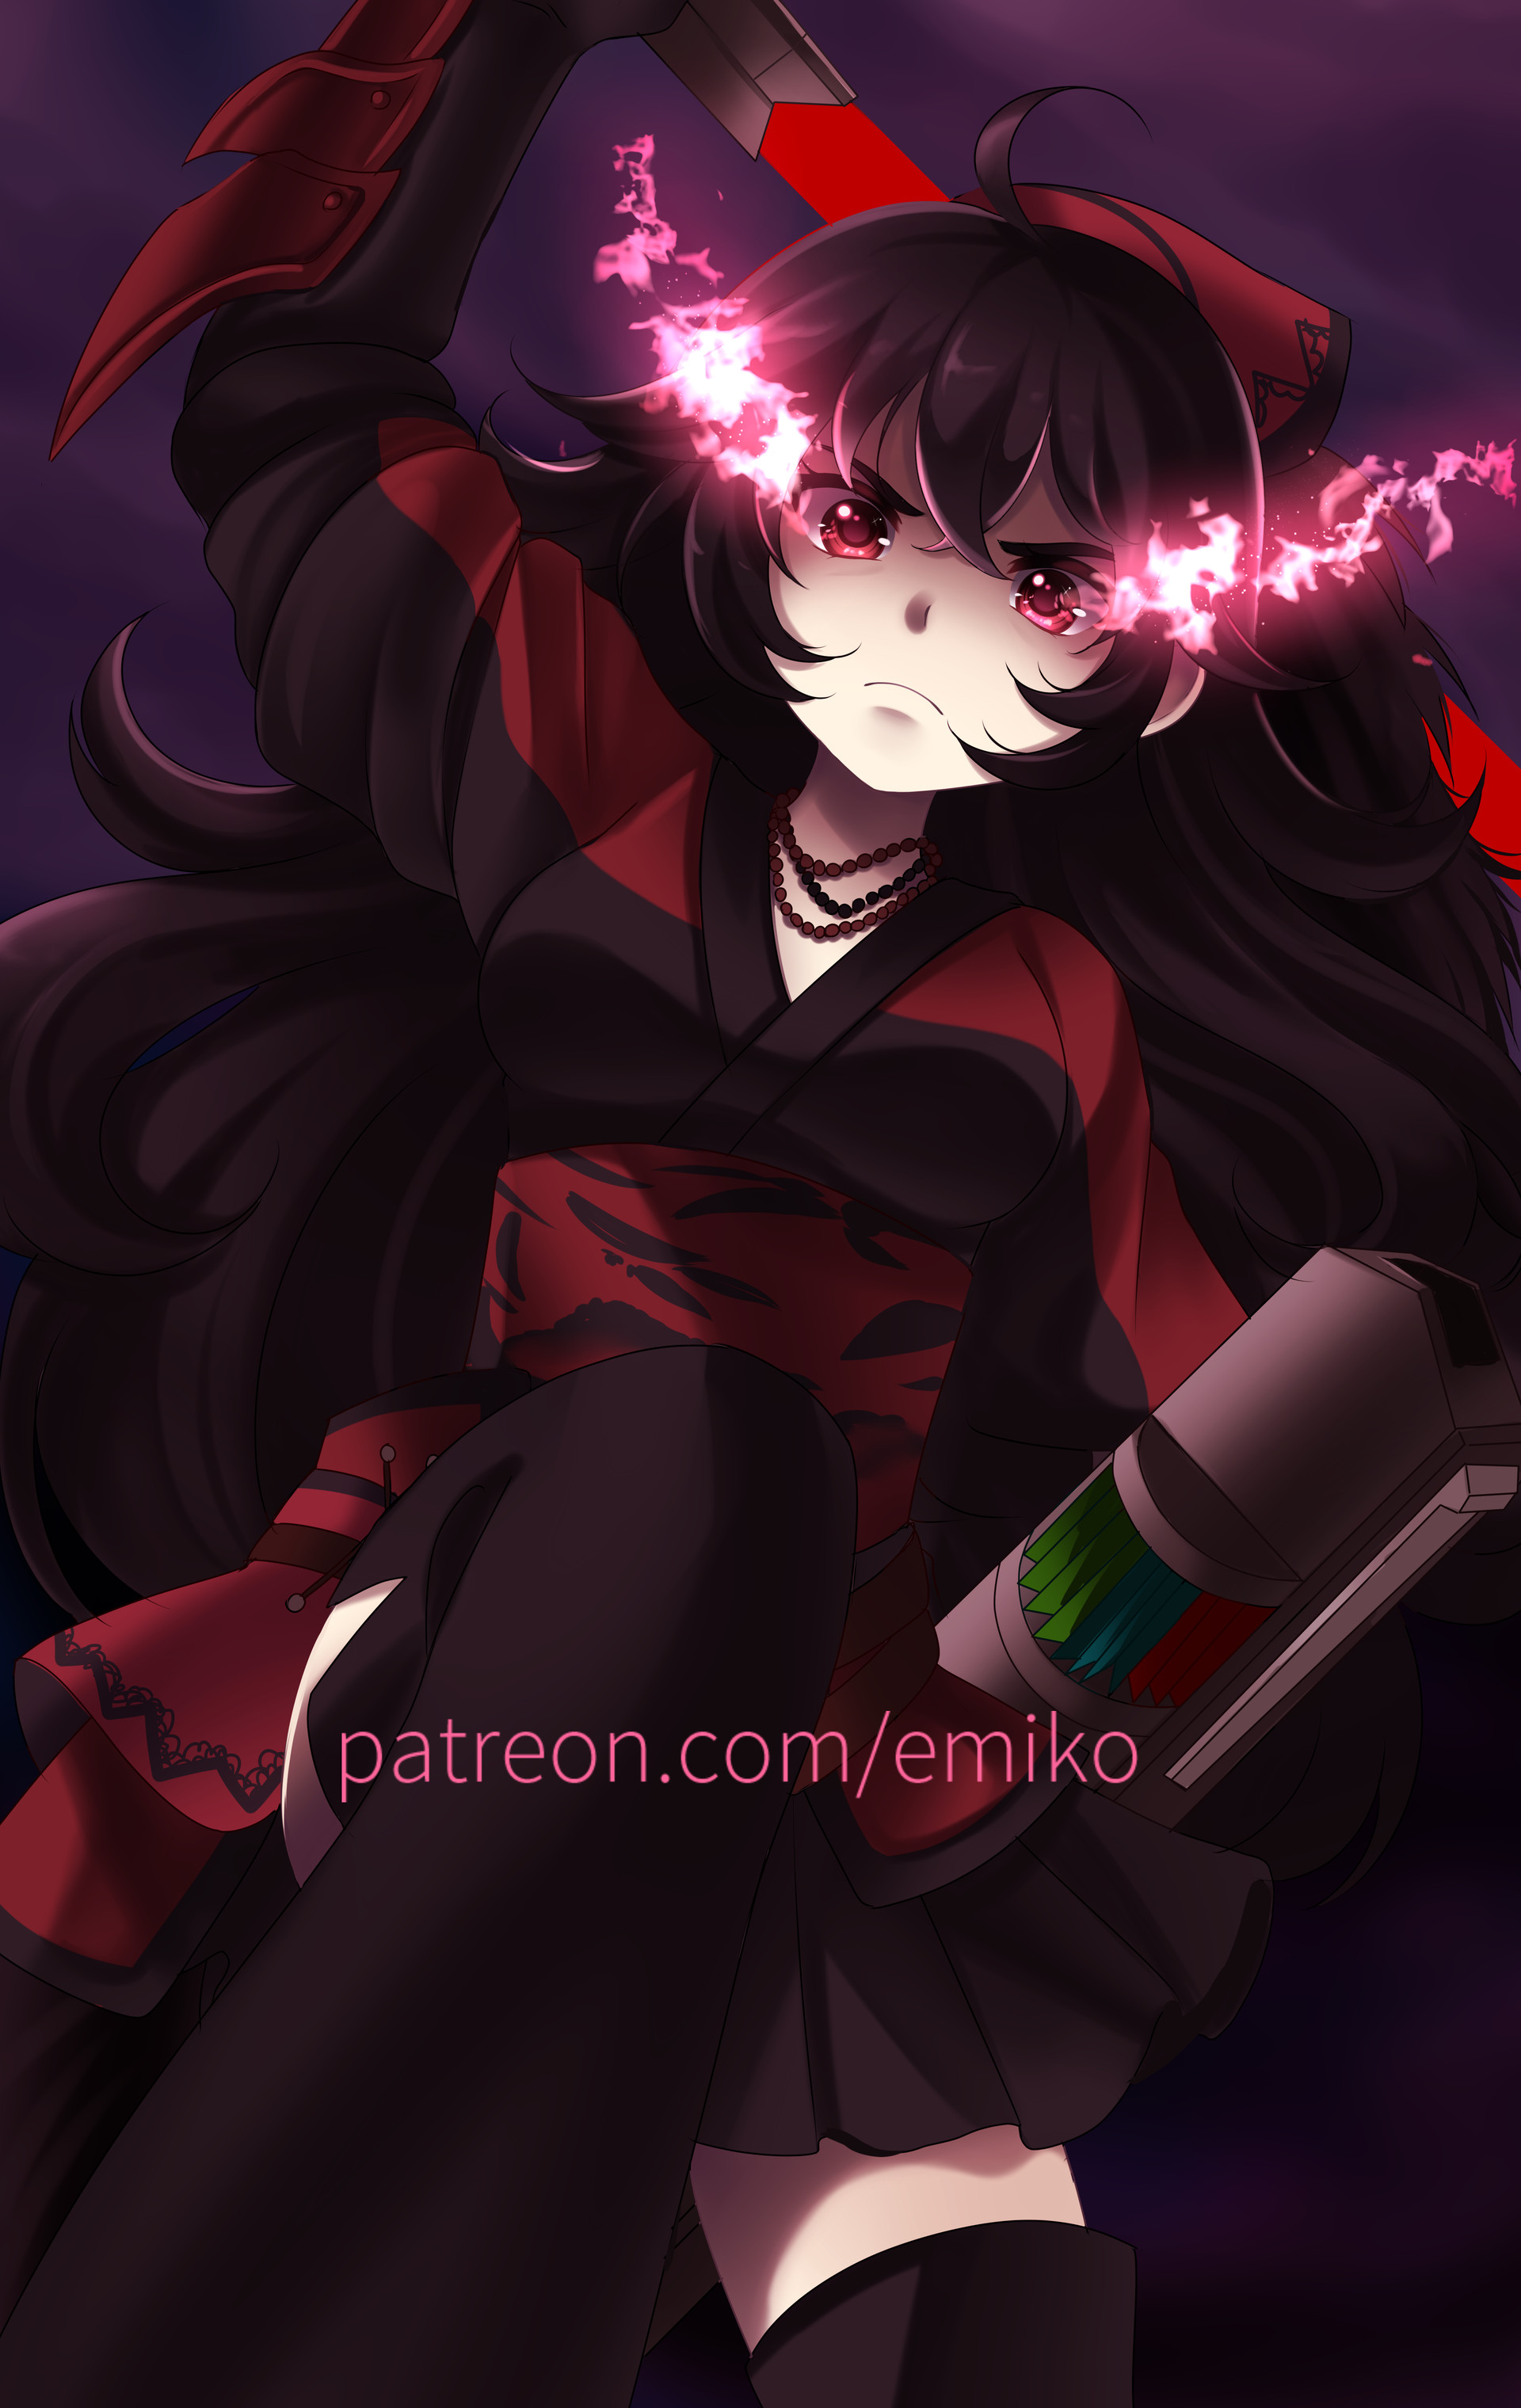 Emiko Ksparkart Raven Branwen Don't get her wrong, she hated when people died, especially when they were ones she held attachment to. emiko ksparkart raven branwen